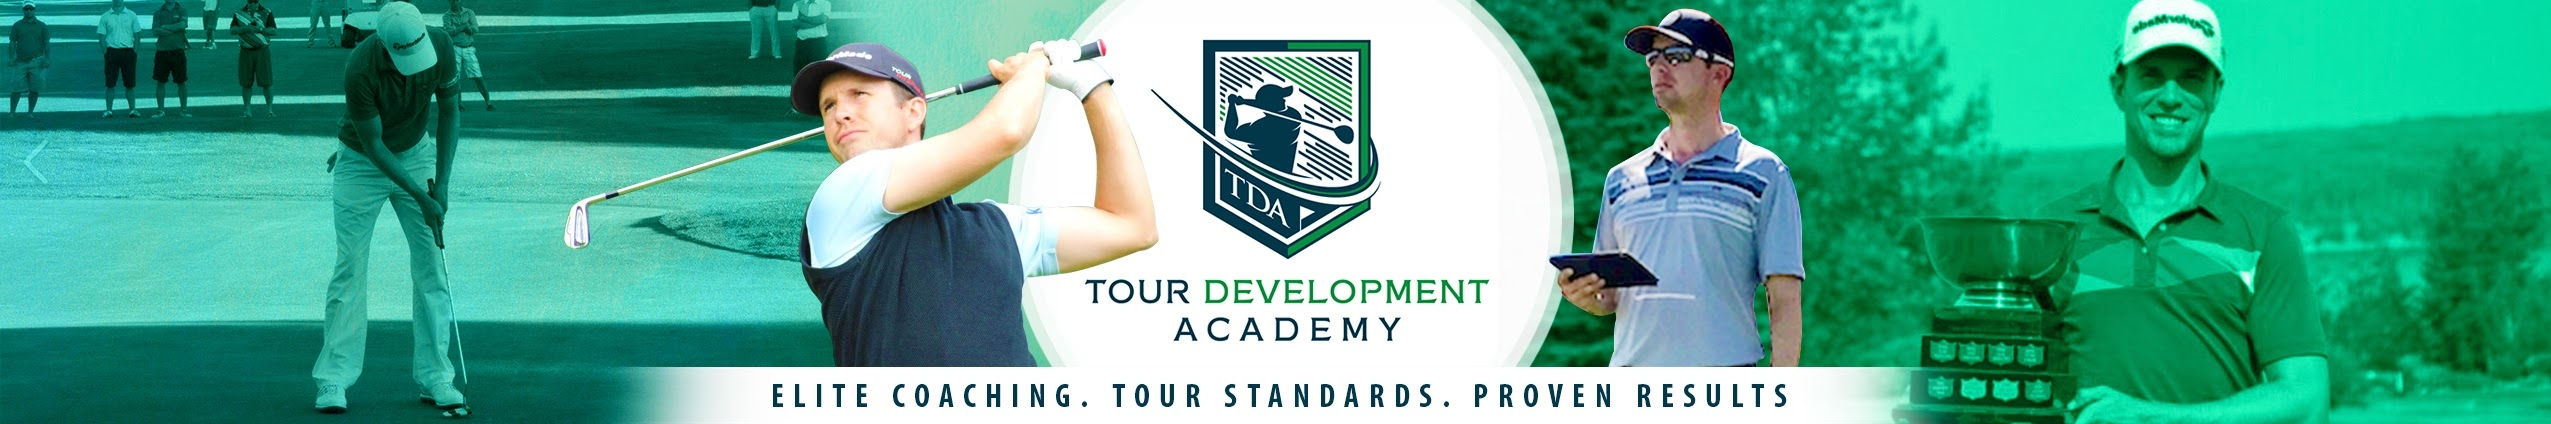 Tour Development Academy (@tdagolf) Cover Image